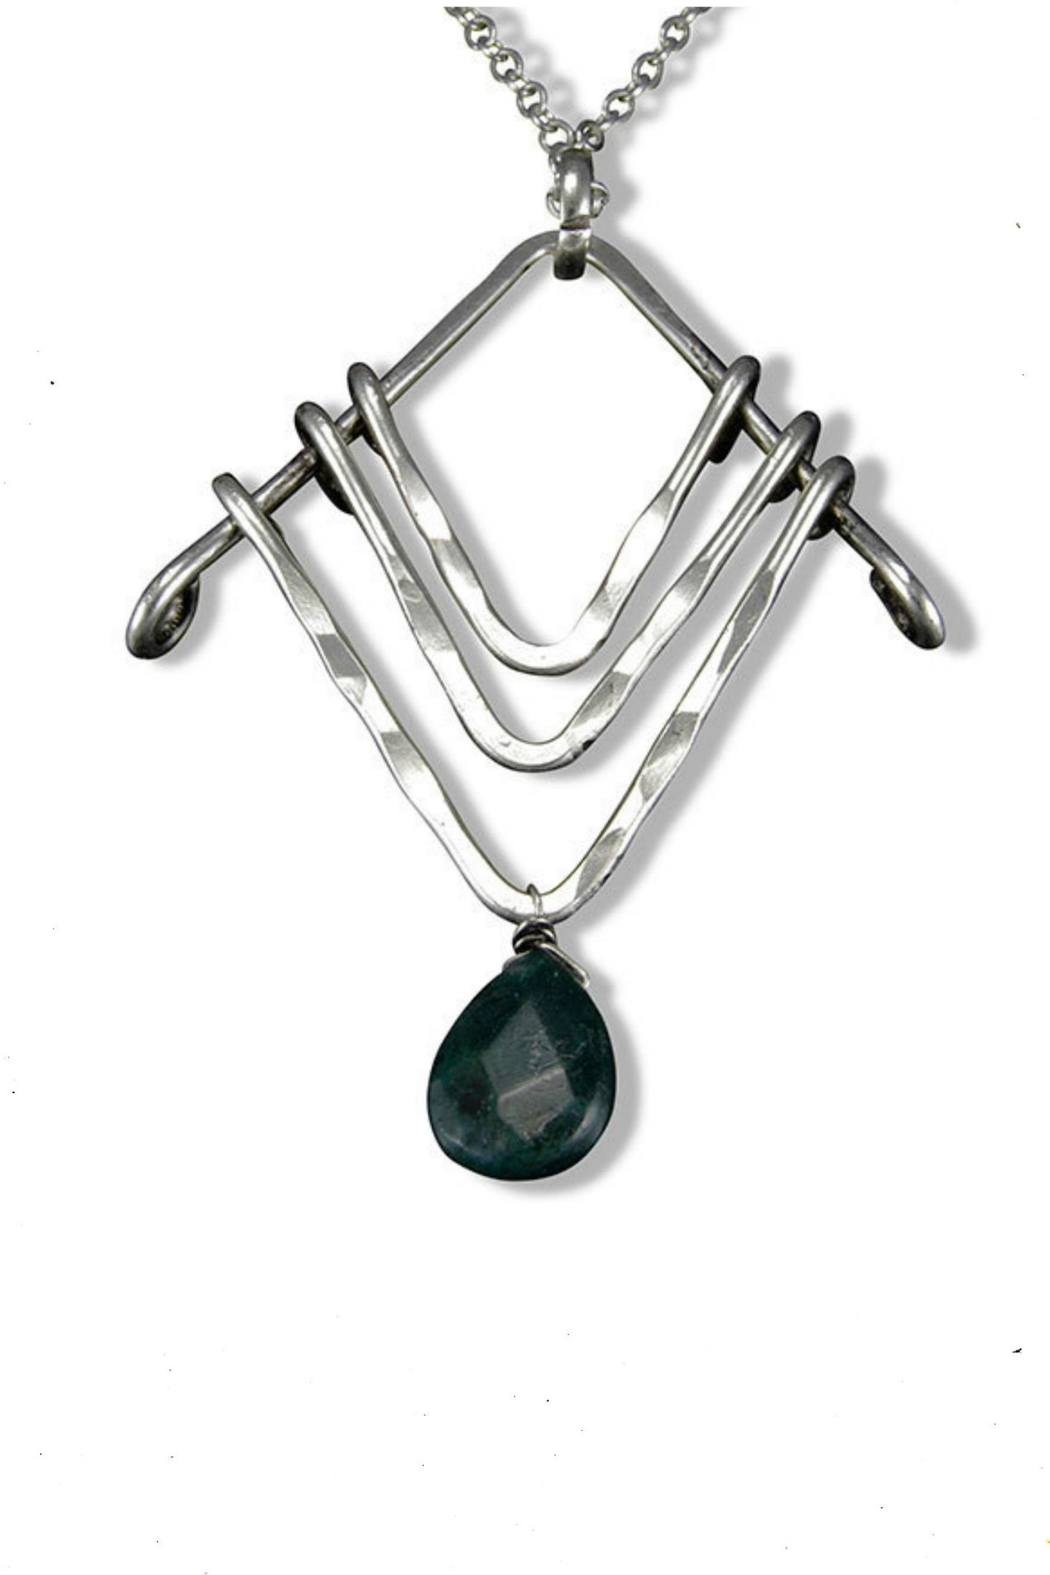 open back product agate oval opnbck moss sterling mossagate silver shoreline nck pendant necklace